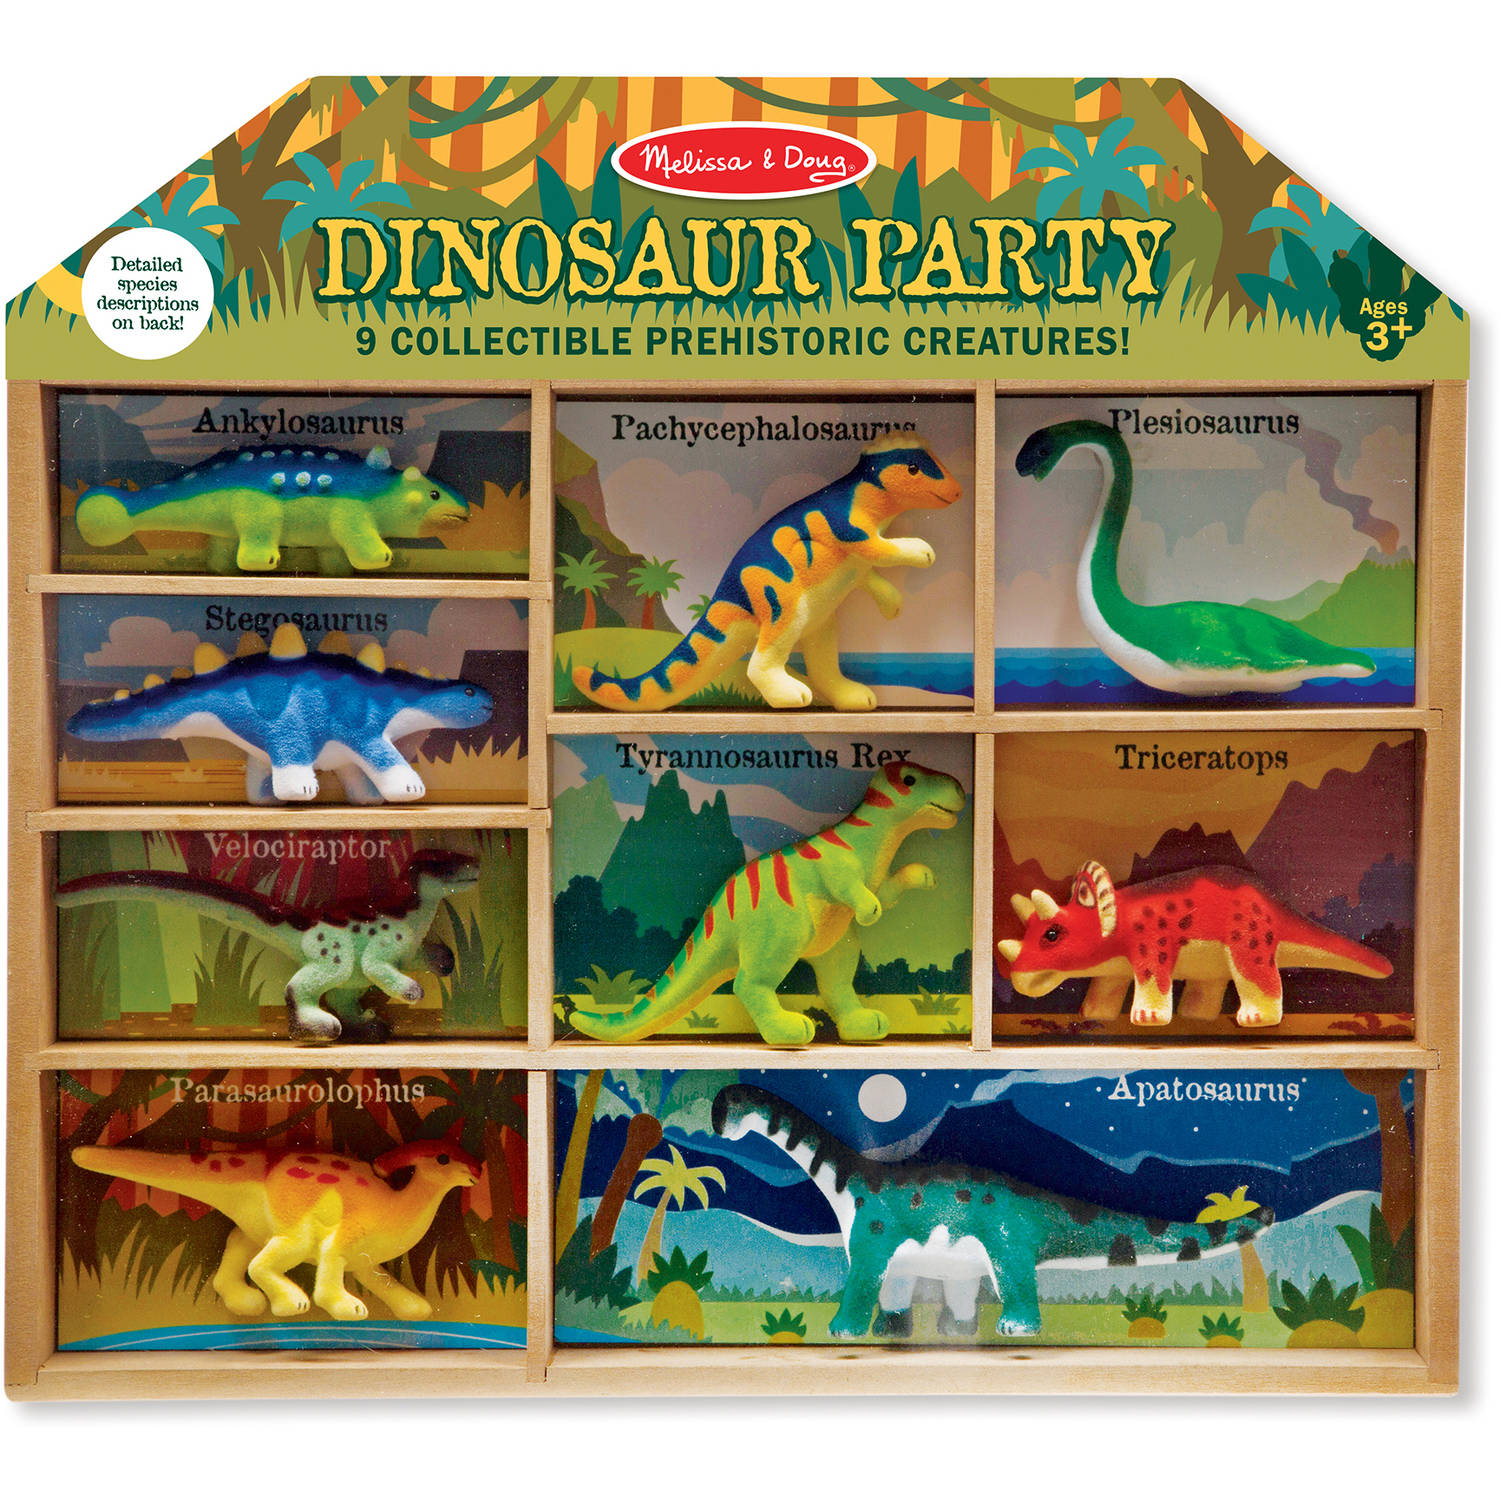 Melissa & Doug Dinosaur Party Play Set, 9 Collectible Miniature Dinosaurs in a Case